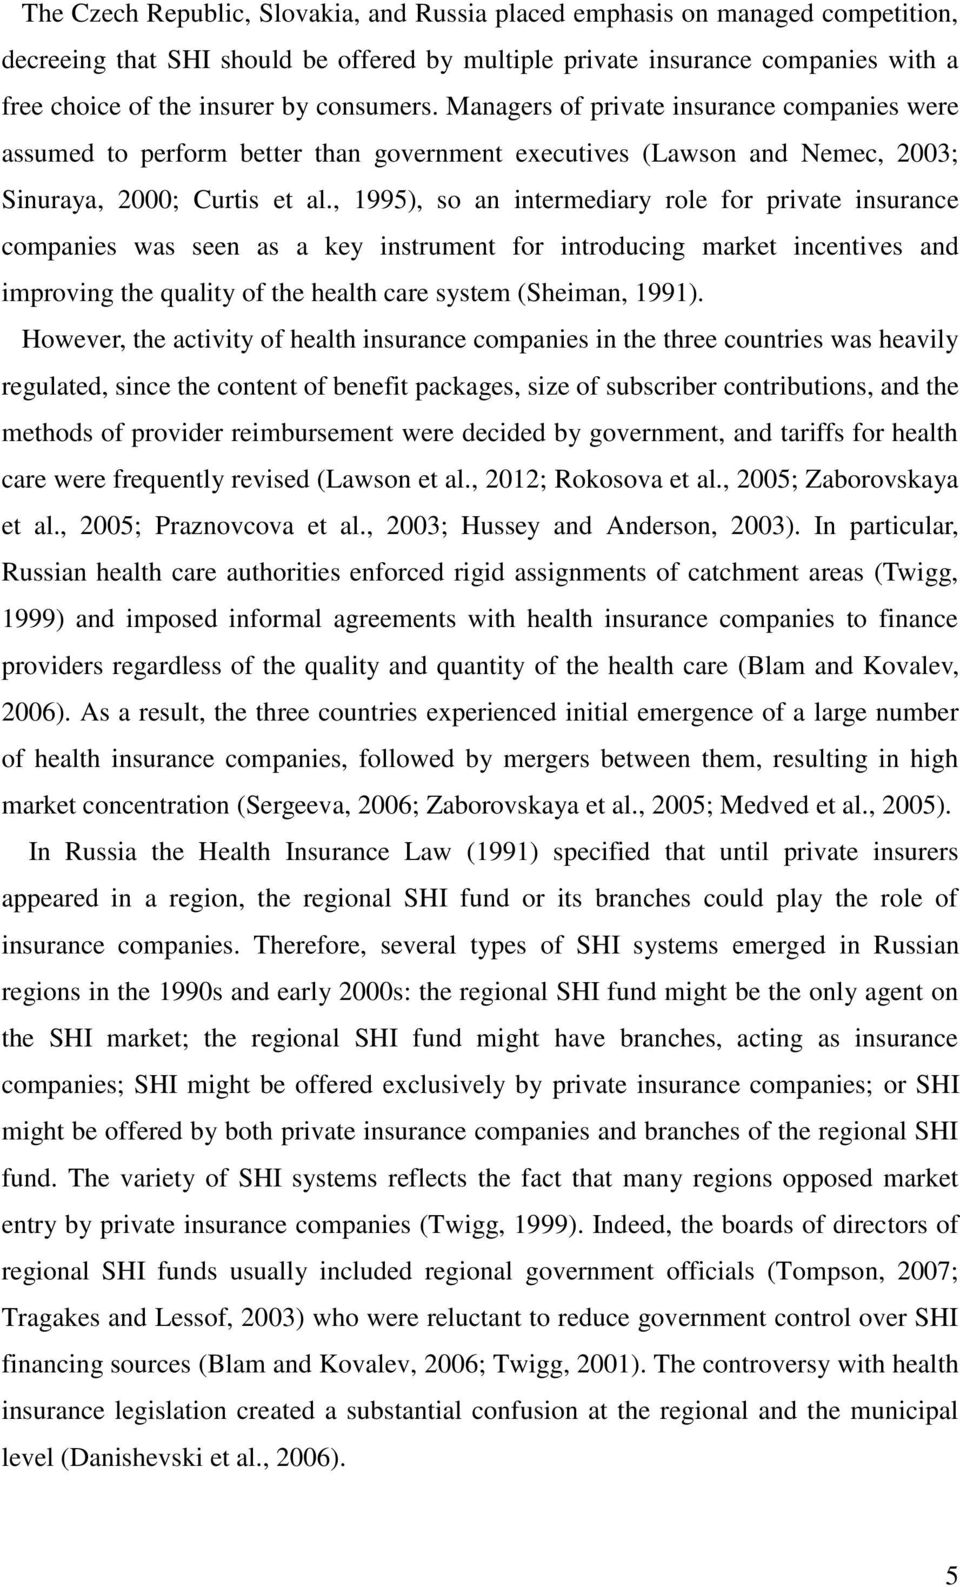 , 1995), so an intermediary role for private insurance companies was seen as a key instrument for introducing market incentives and improving the quality of the health care system (Sheiman, 1991).